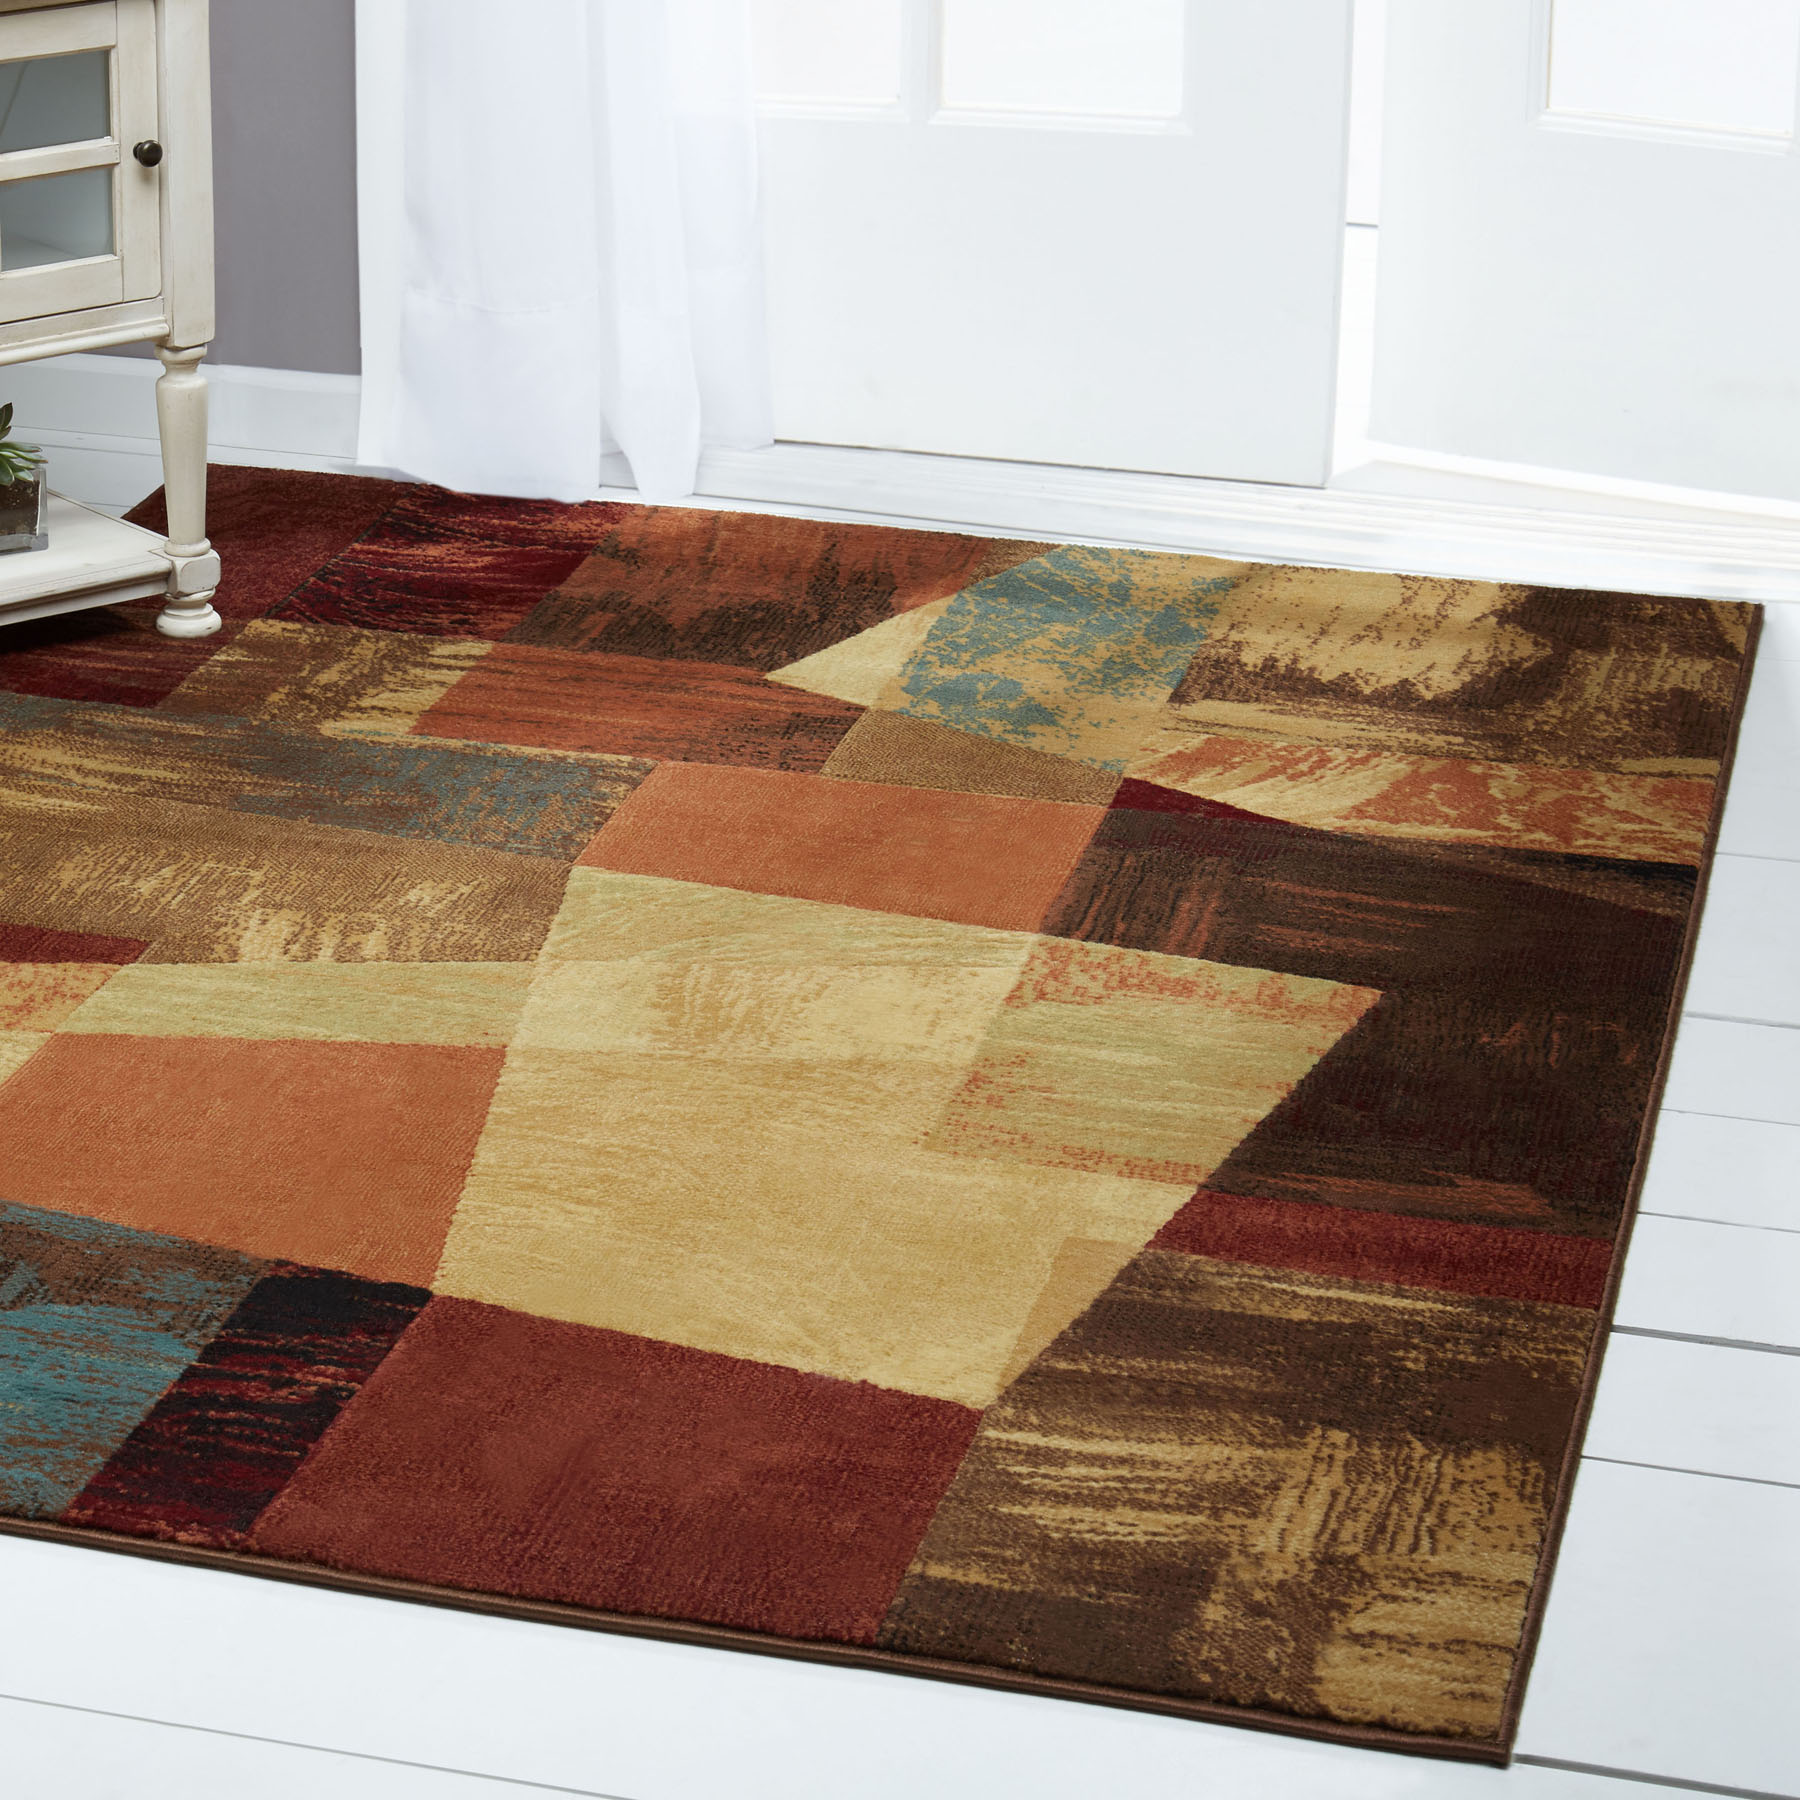 Details About Rugs Area Rugs Carpet Flooring Area Rug Floor Decor Modern Large Rugs Sale New